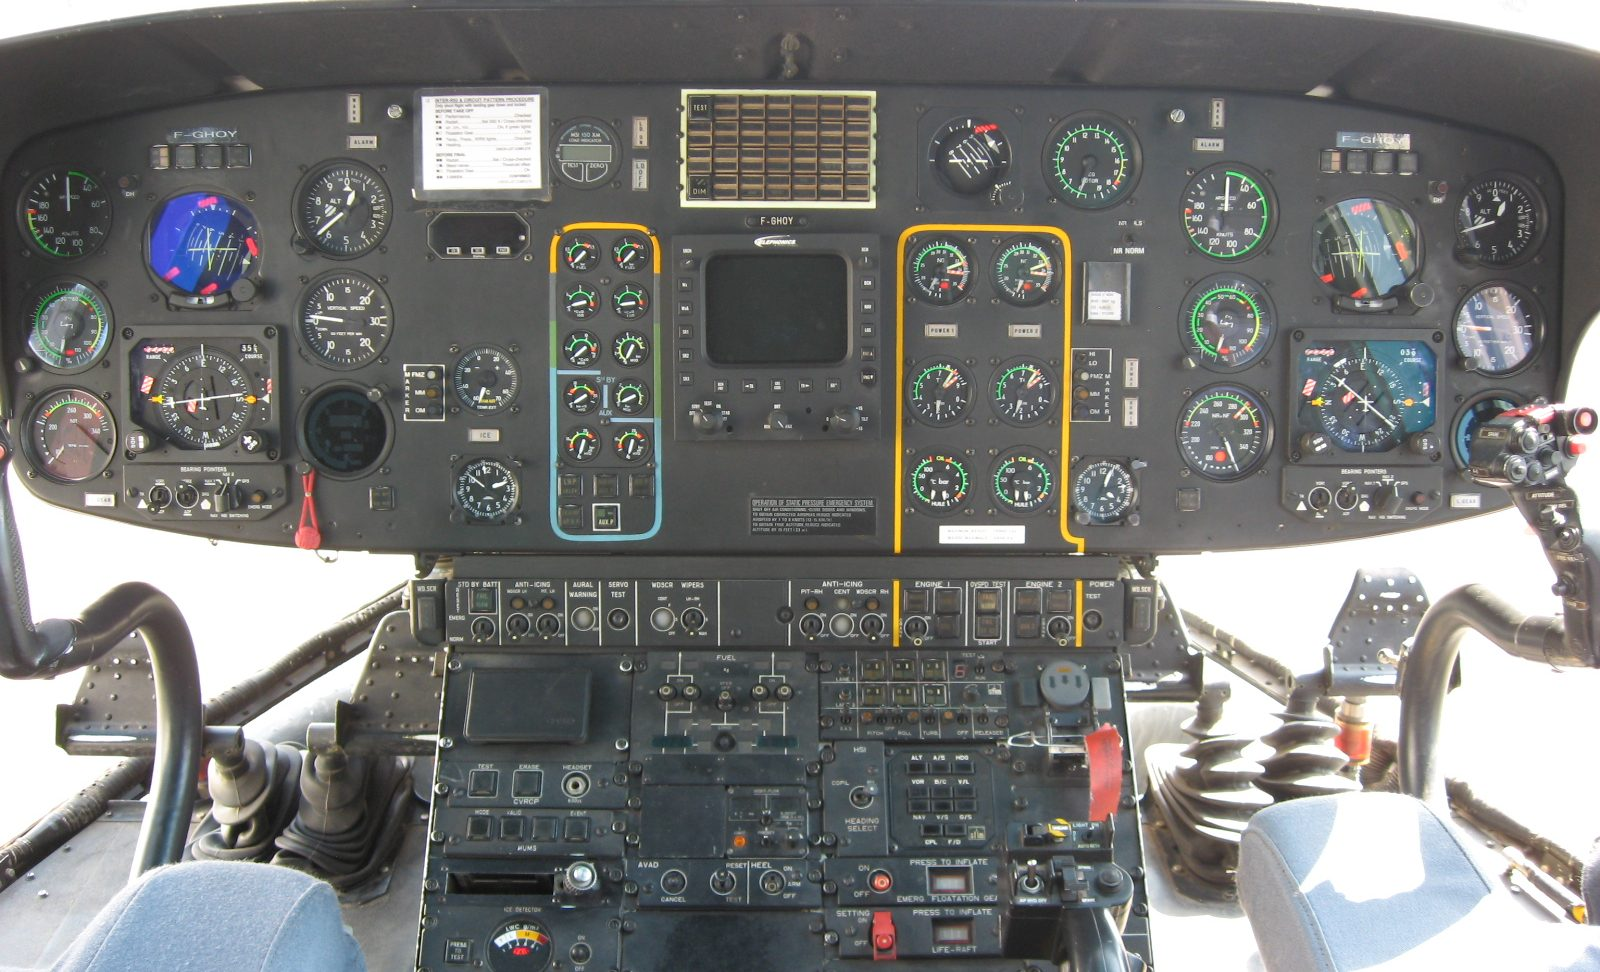 First EASA Certification of an LPV Capability for AS332L1 With Digital and Analogic Systems